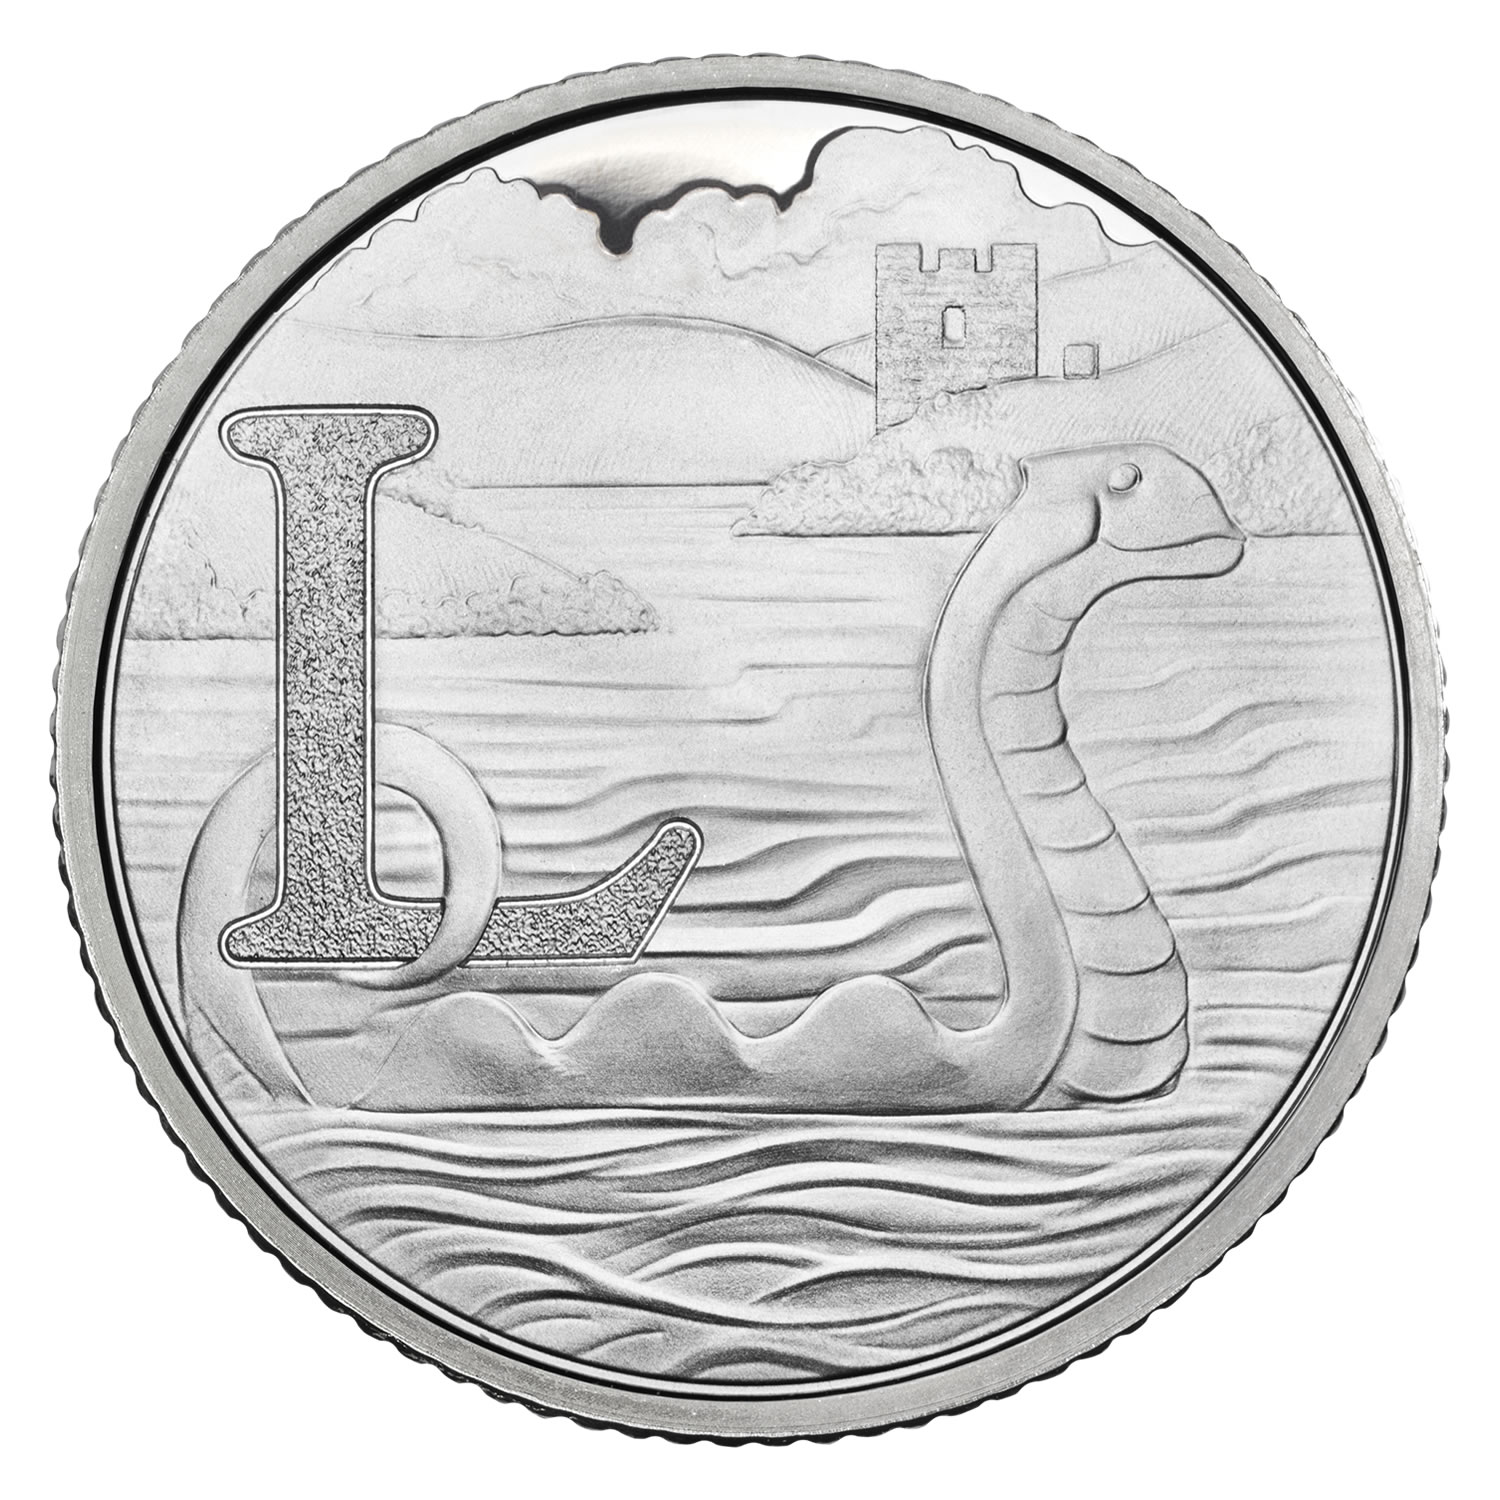 L - Loch Ness 2018 UK 10p Silver Proof Coin